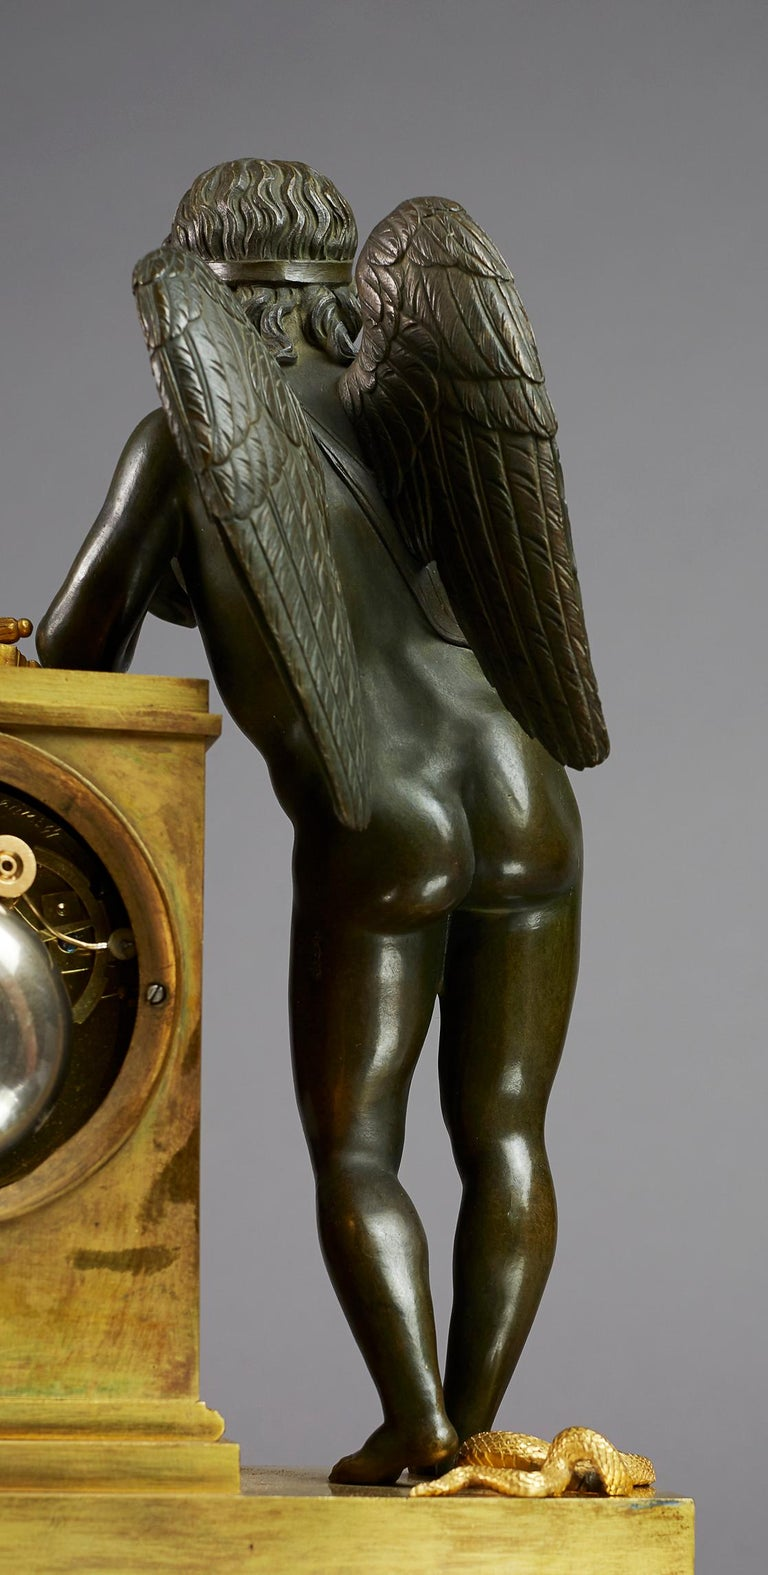 French Early 19th Century Empire Mantel Clock by Ledure with Apollo or Eros For Sale